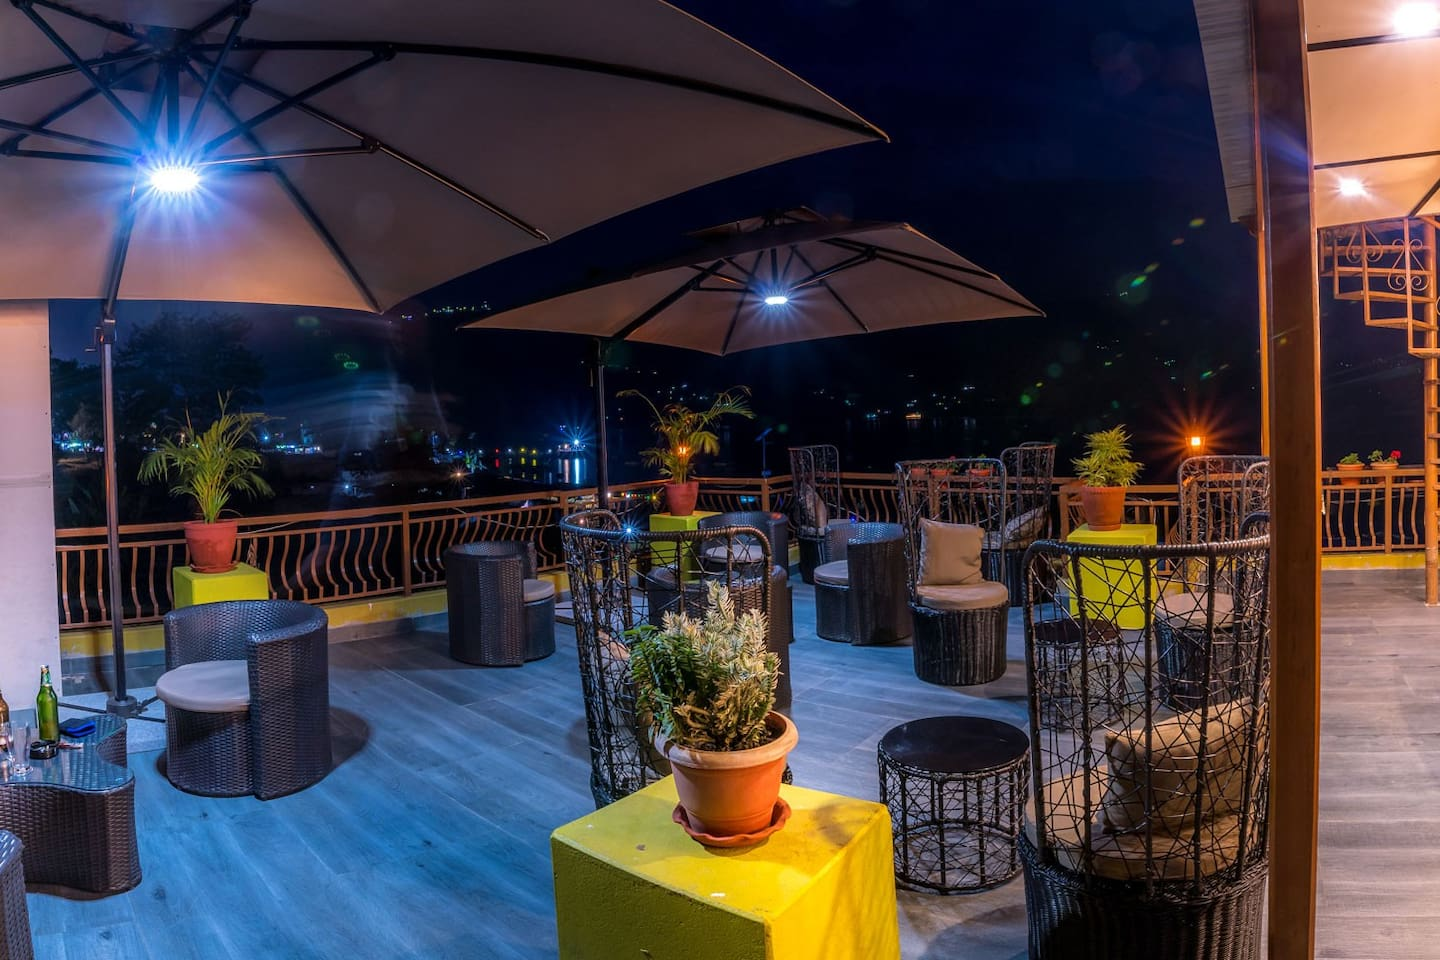 Our roof top terrace with beautiful views of the lake